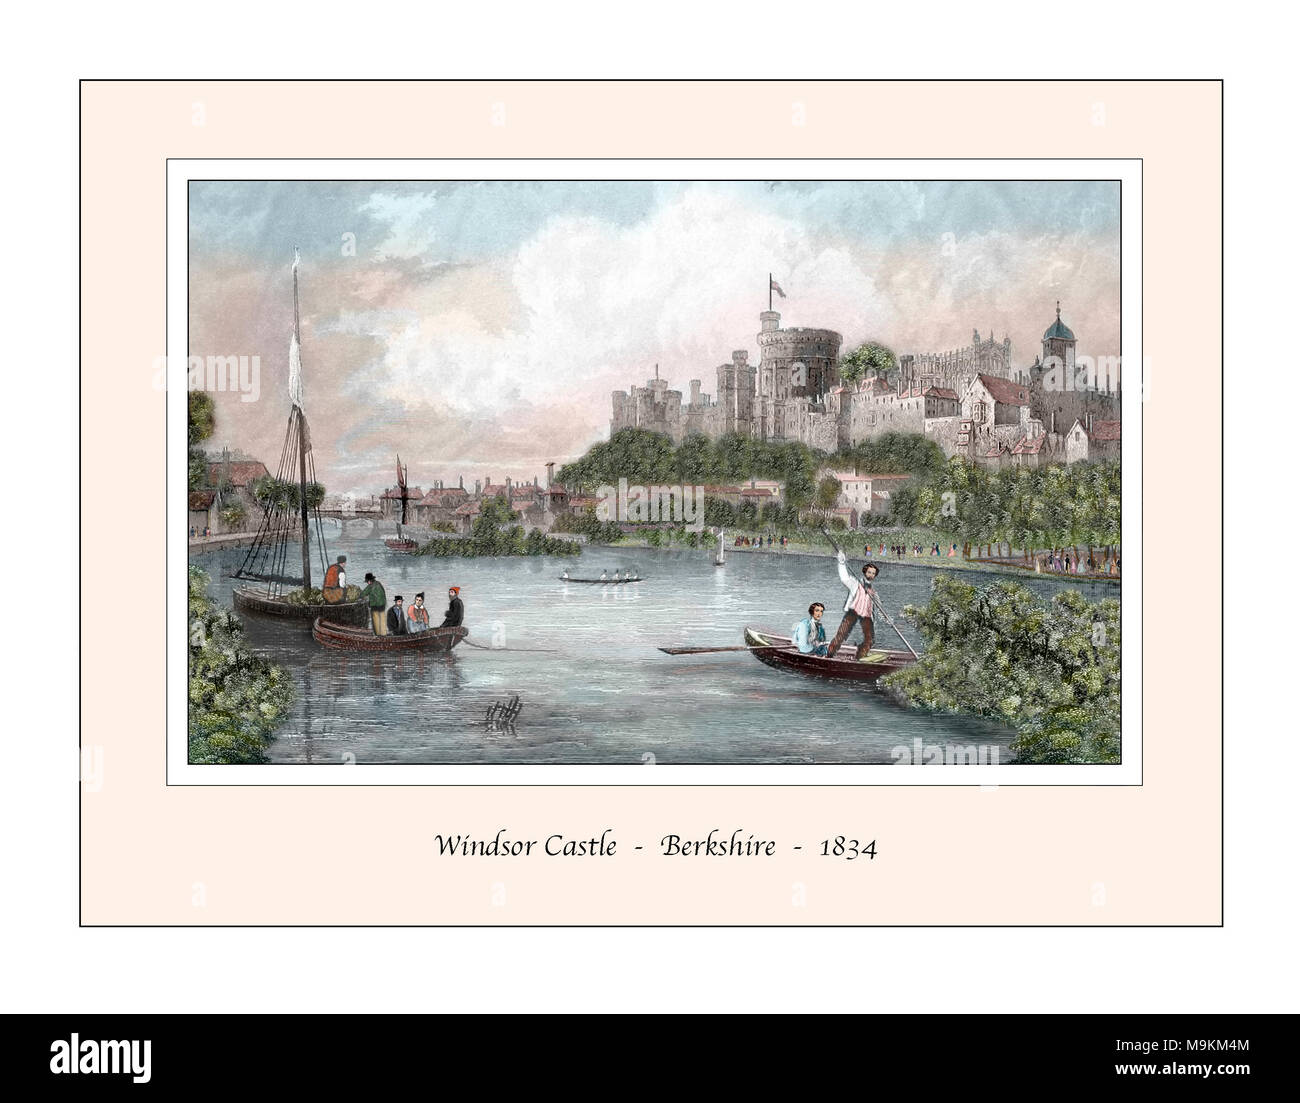 Windsor Castle Original Design from a 19th century Engraving - Stock Image